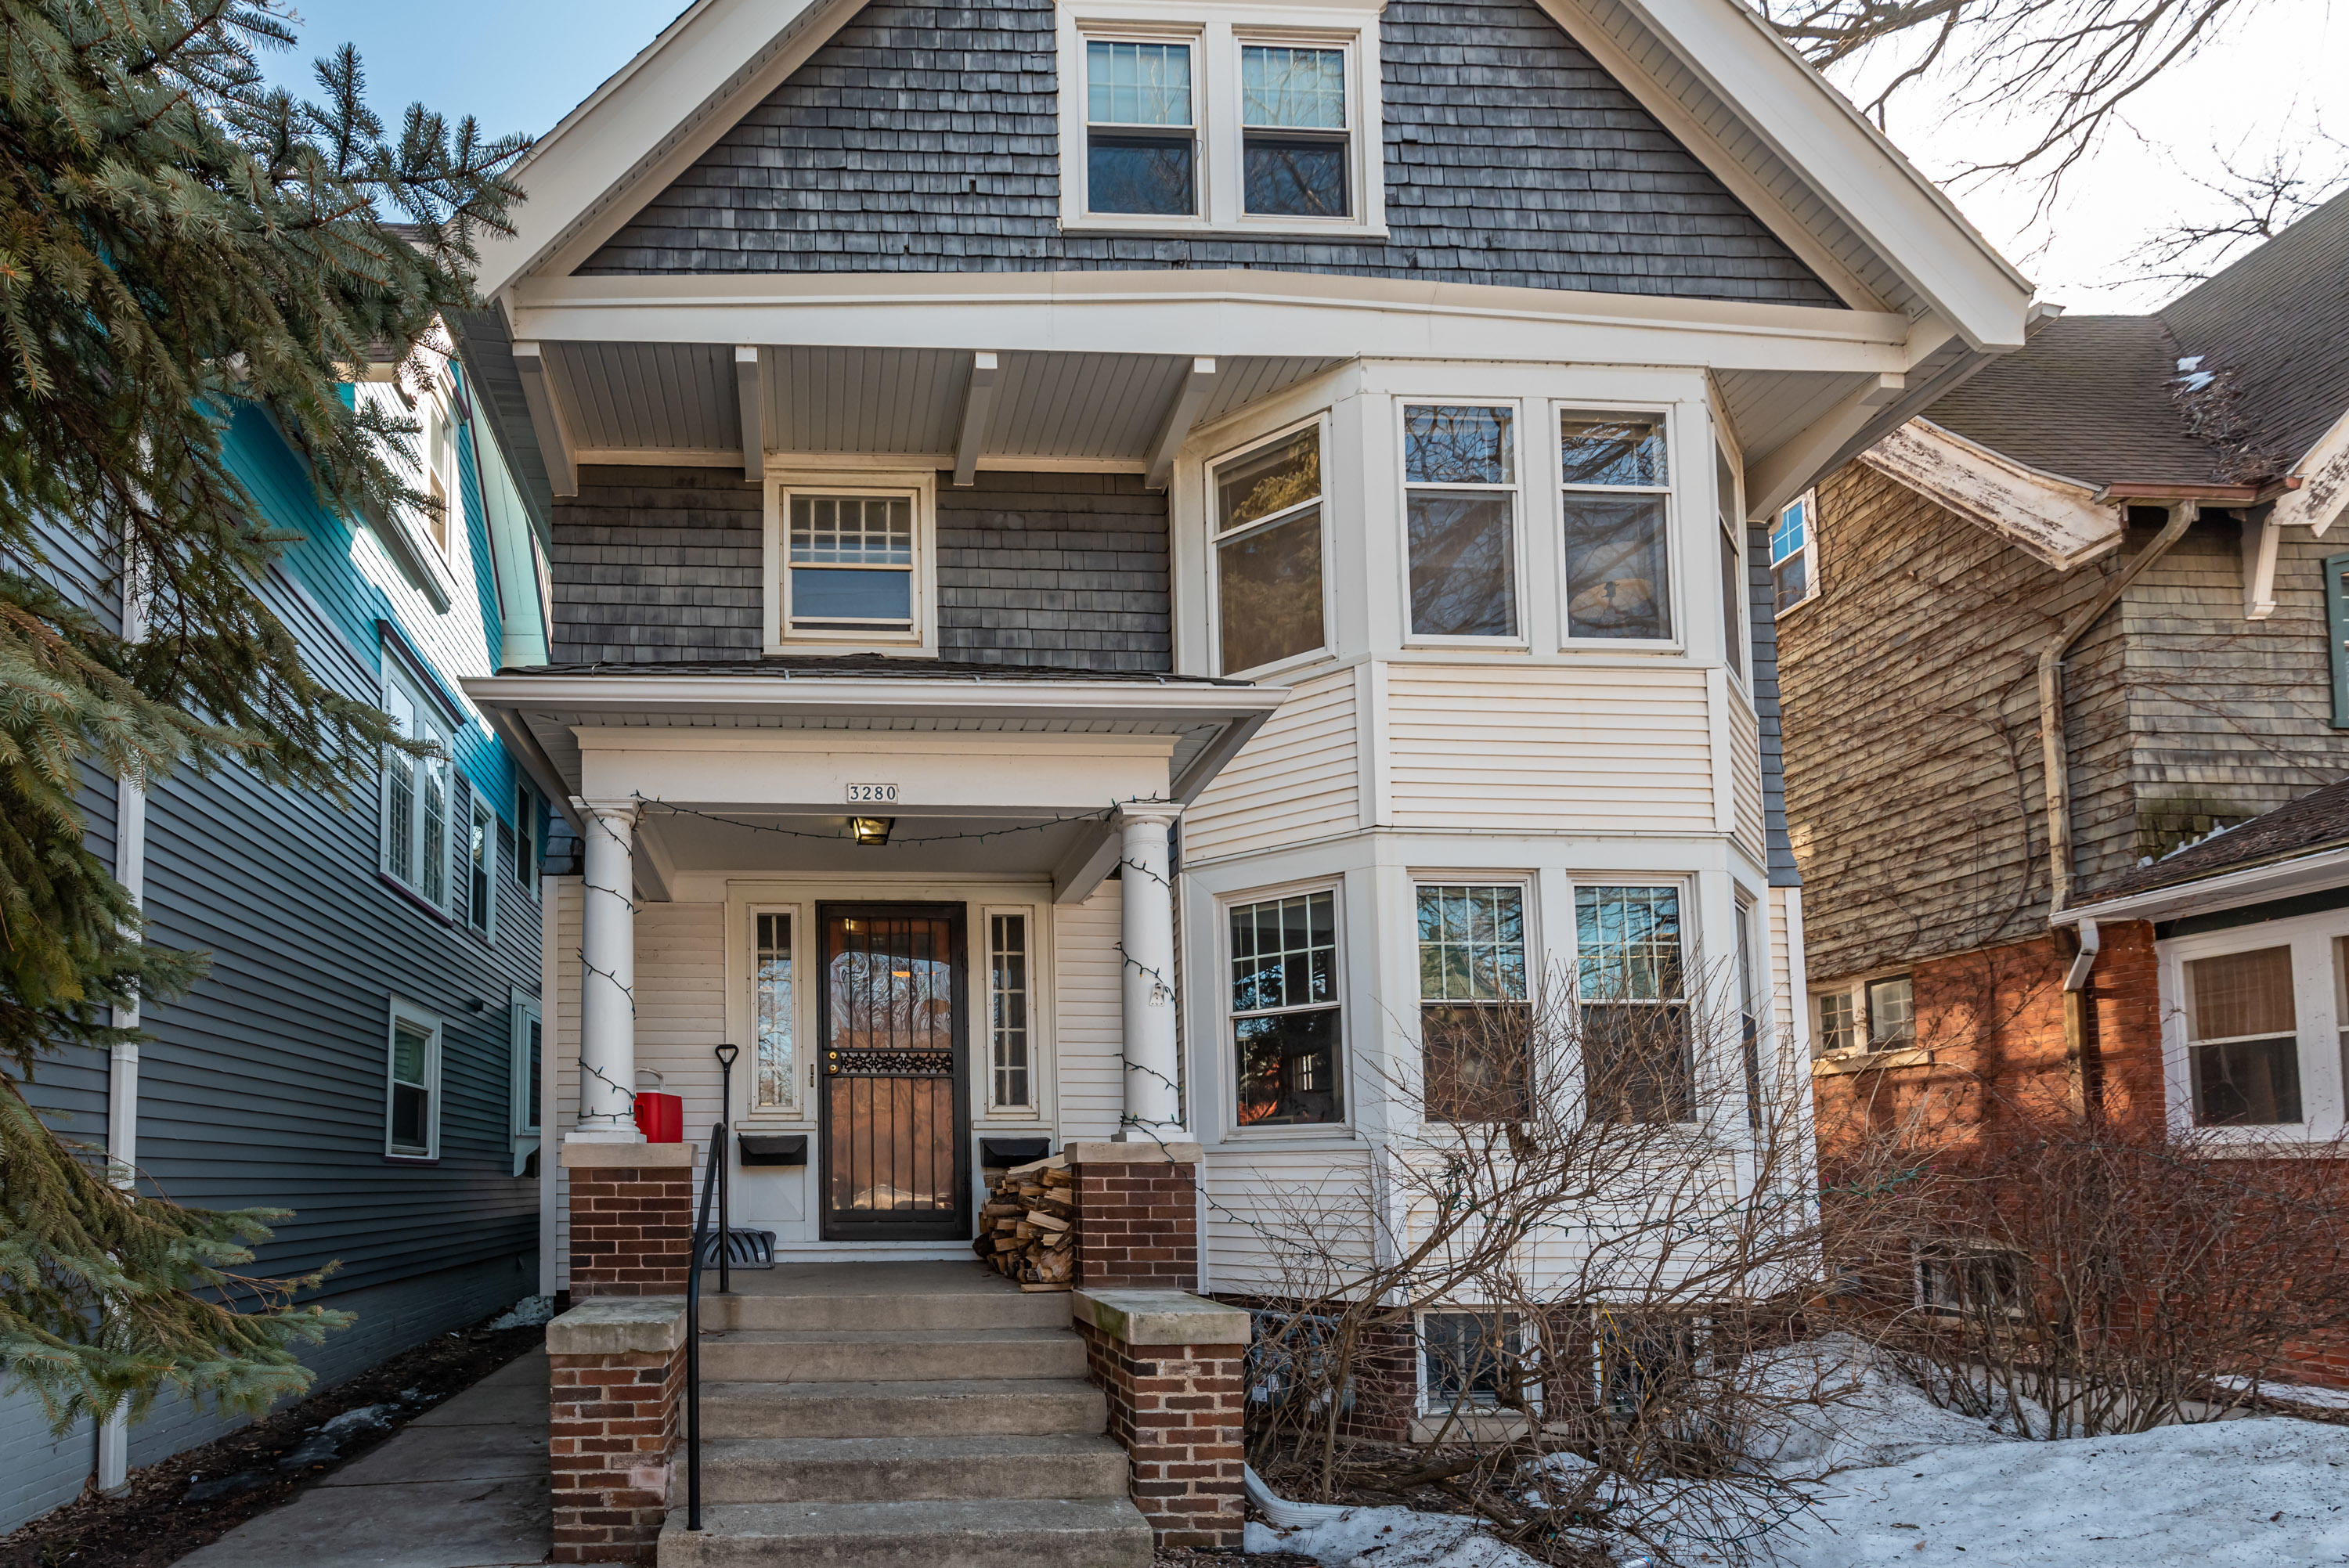 Photo of 3280 N Downer Ave, Milwaukee, WI 53211